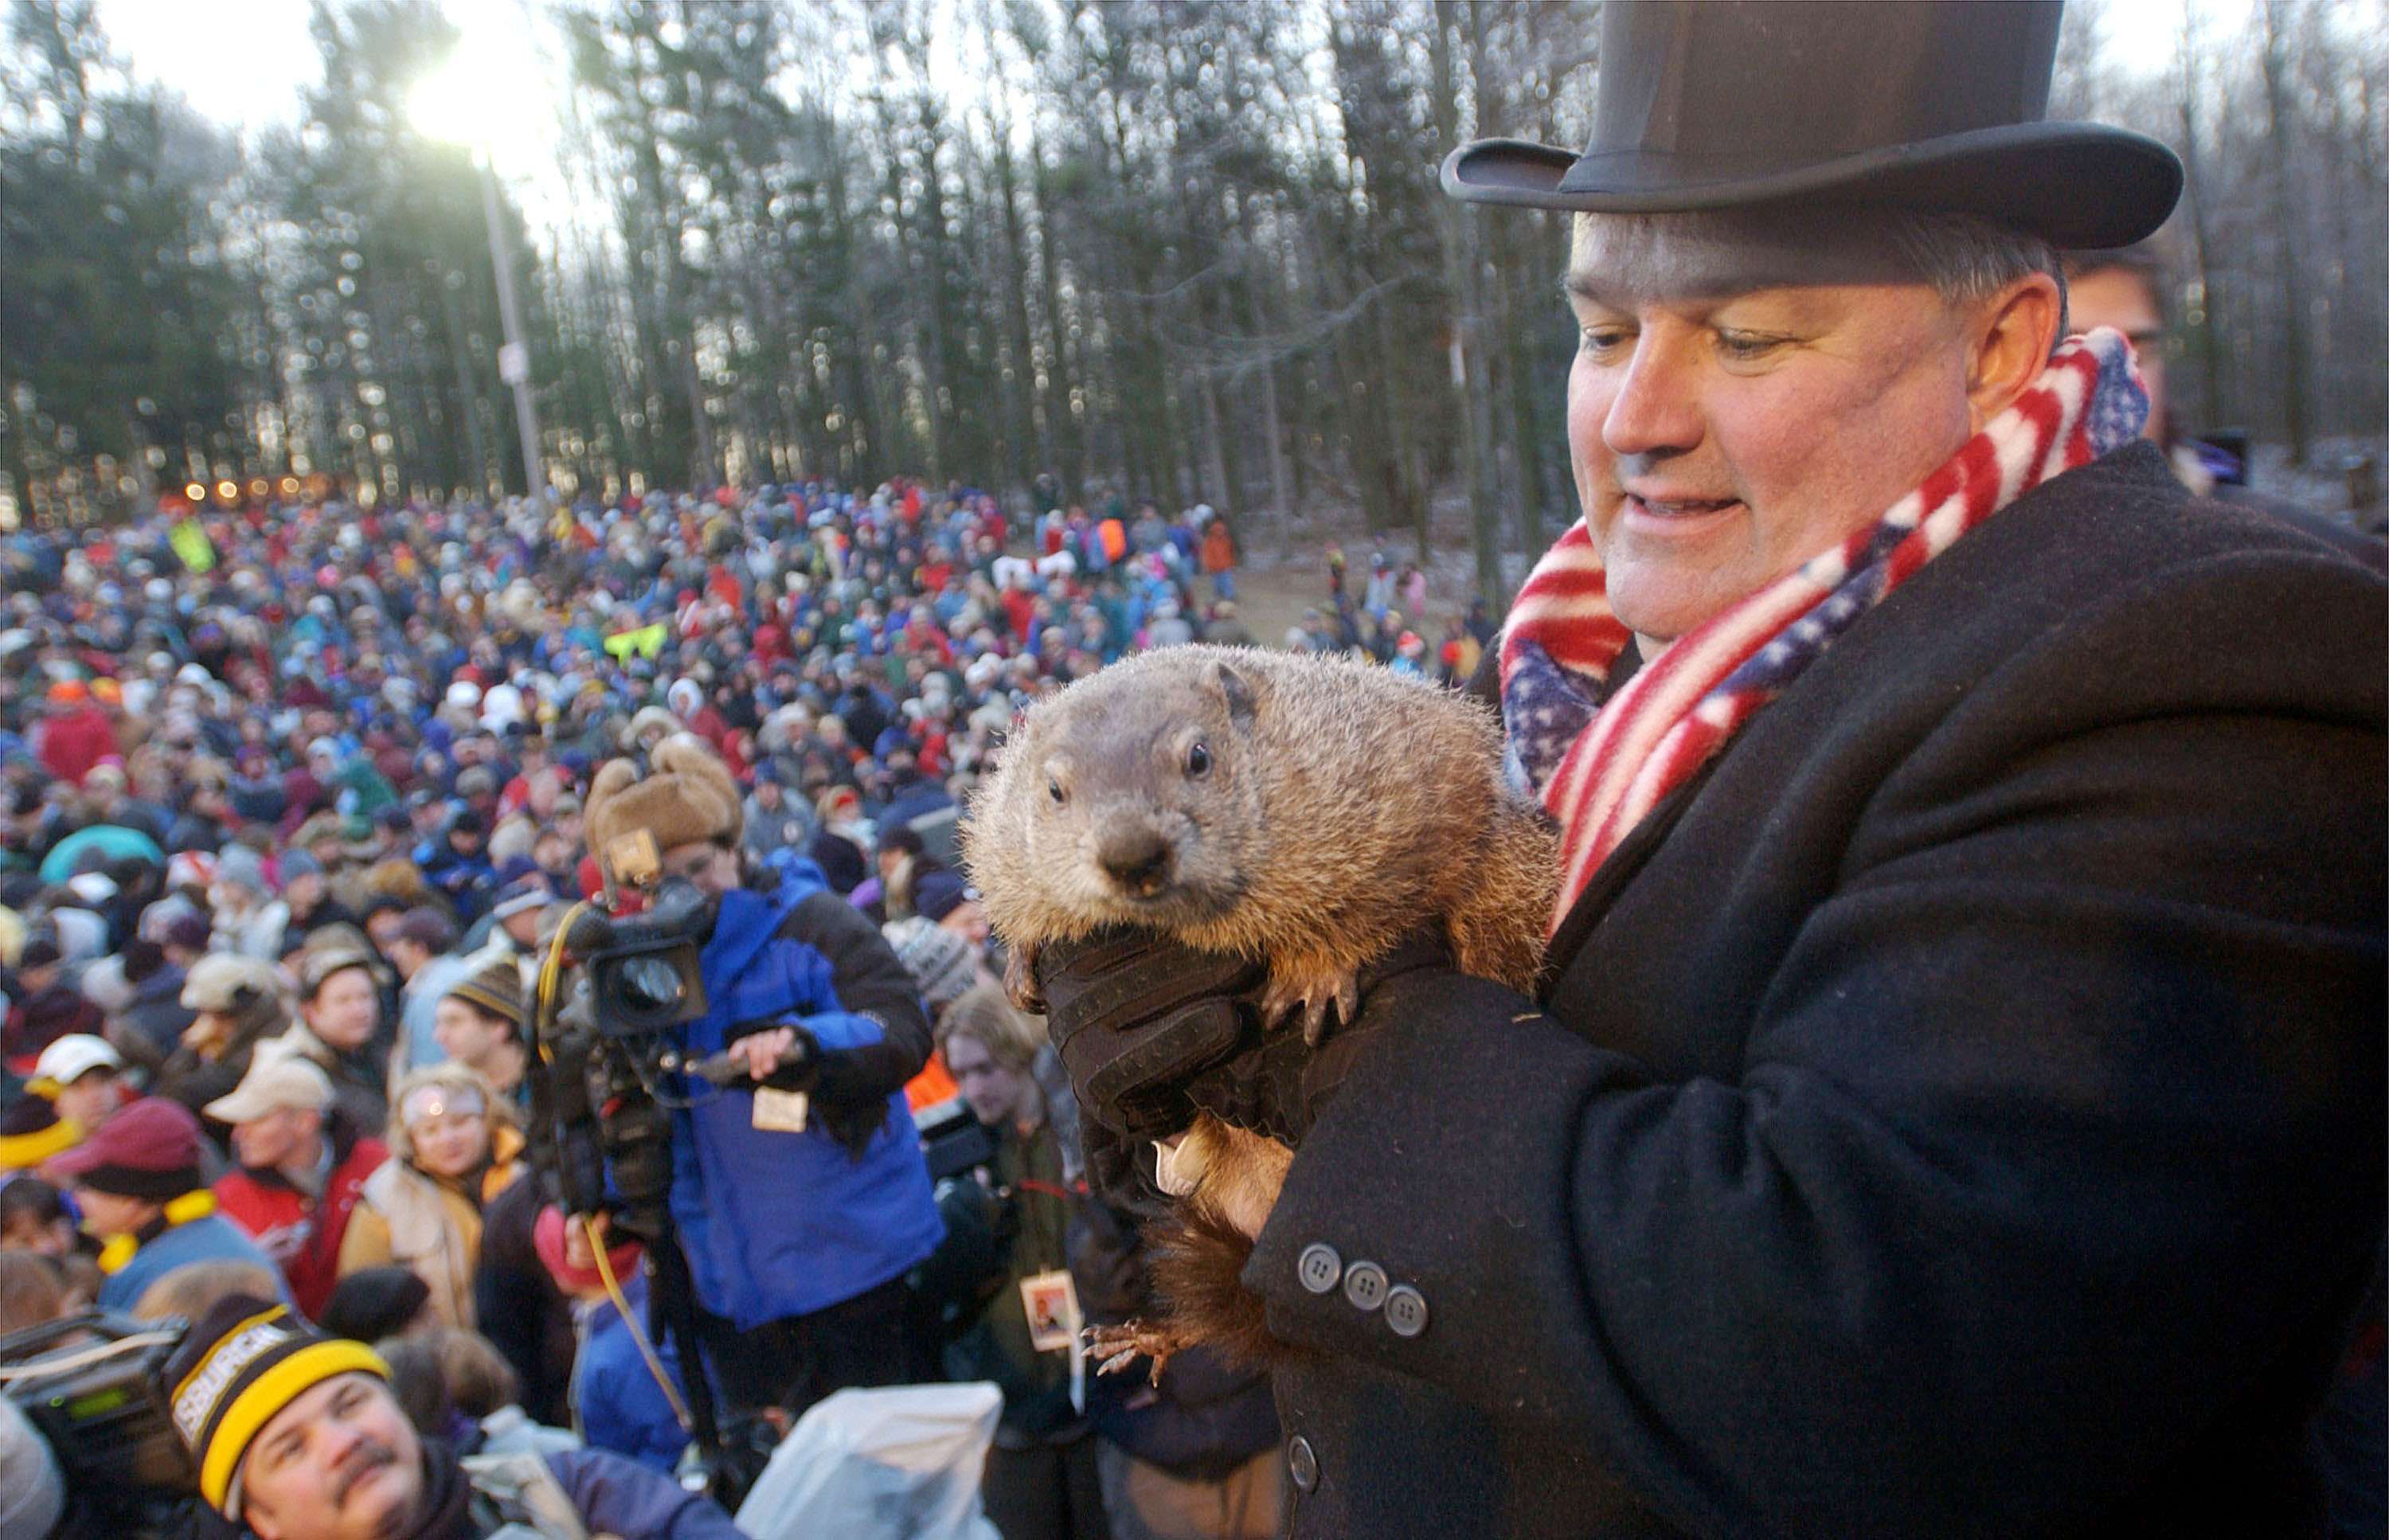 Handlers: Punxsutawney Phil sees 6 more weeks of winter